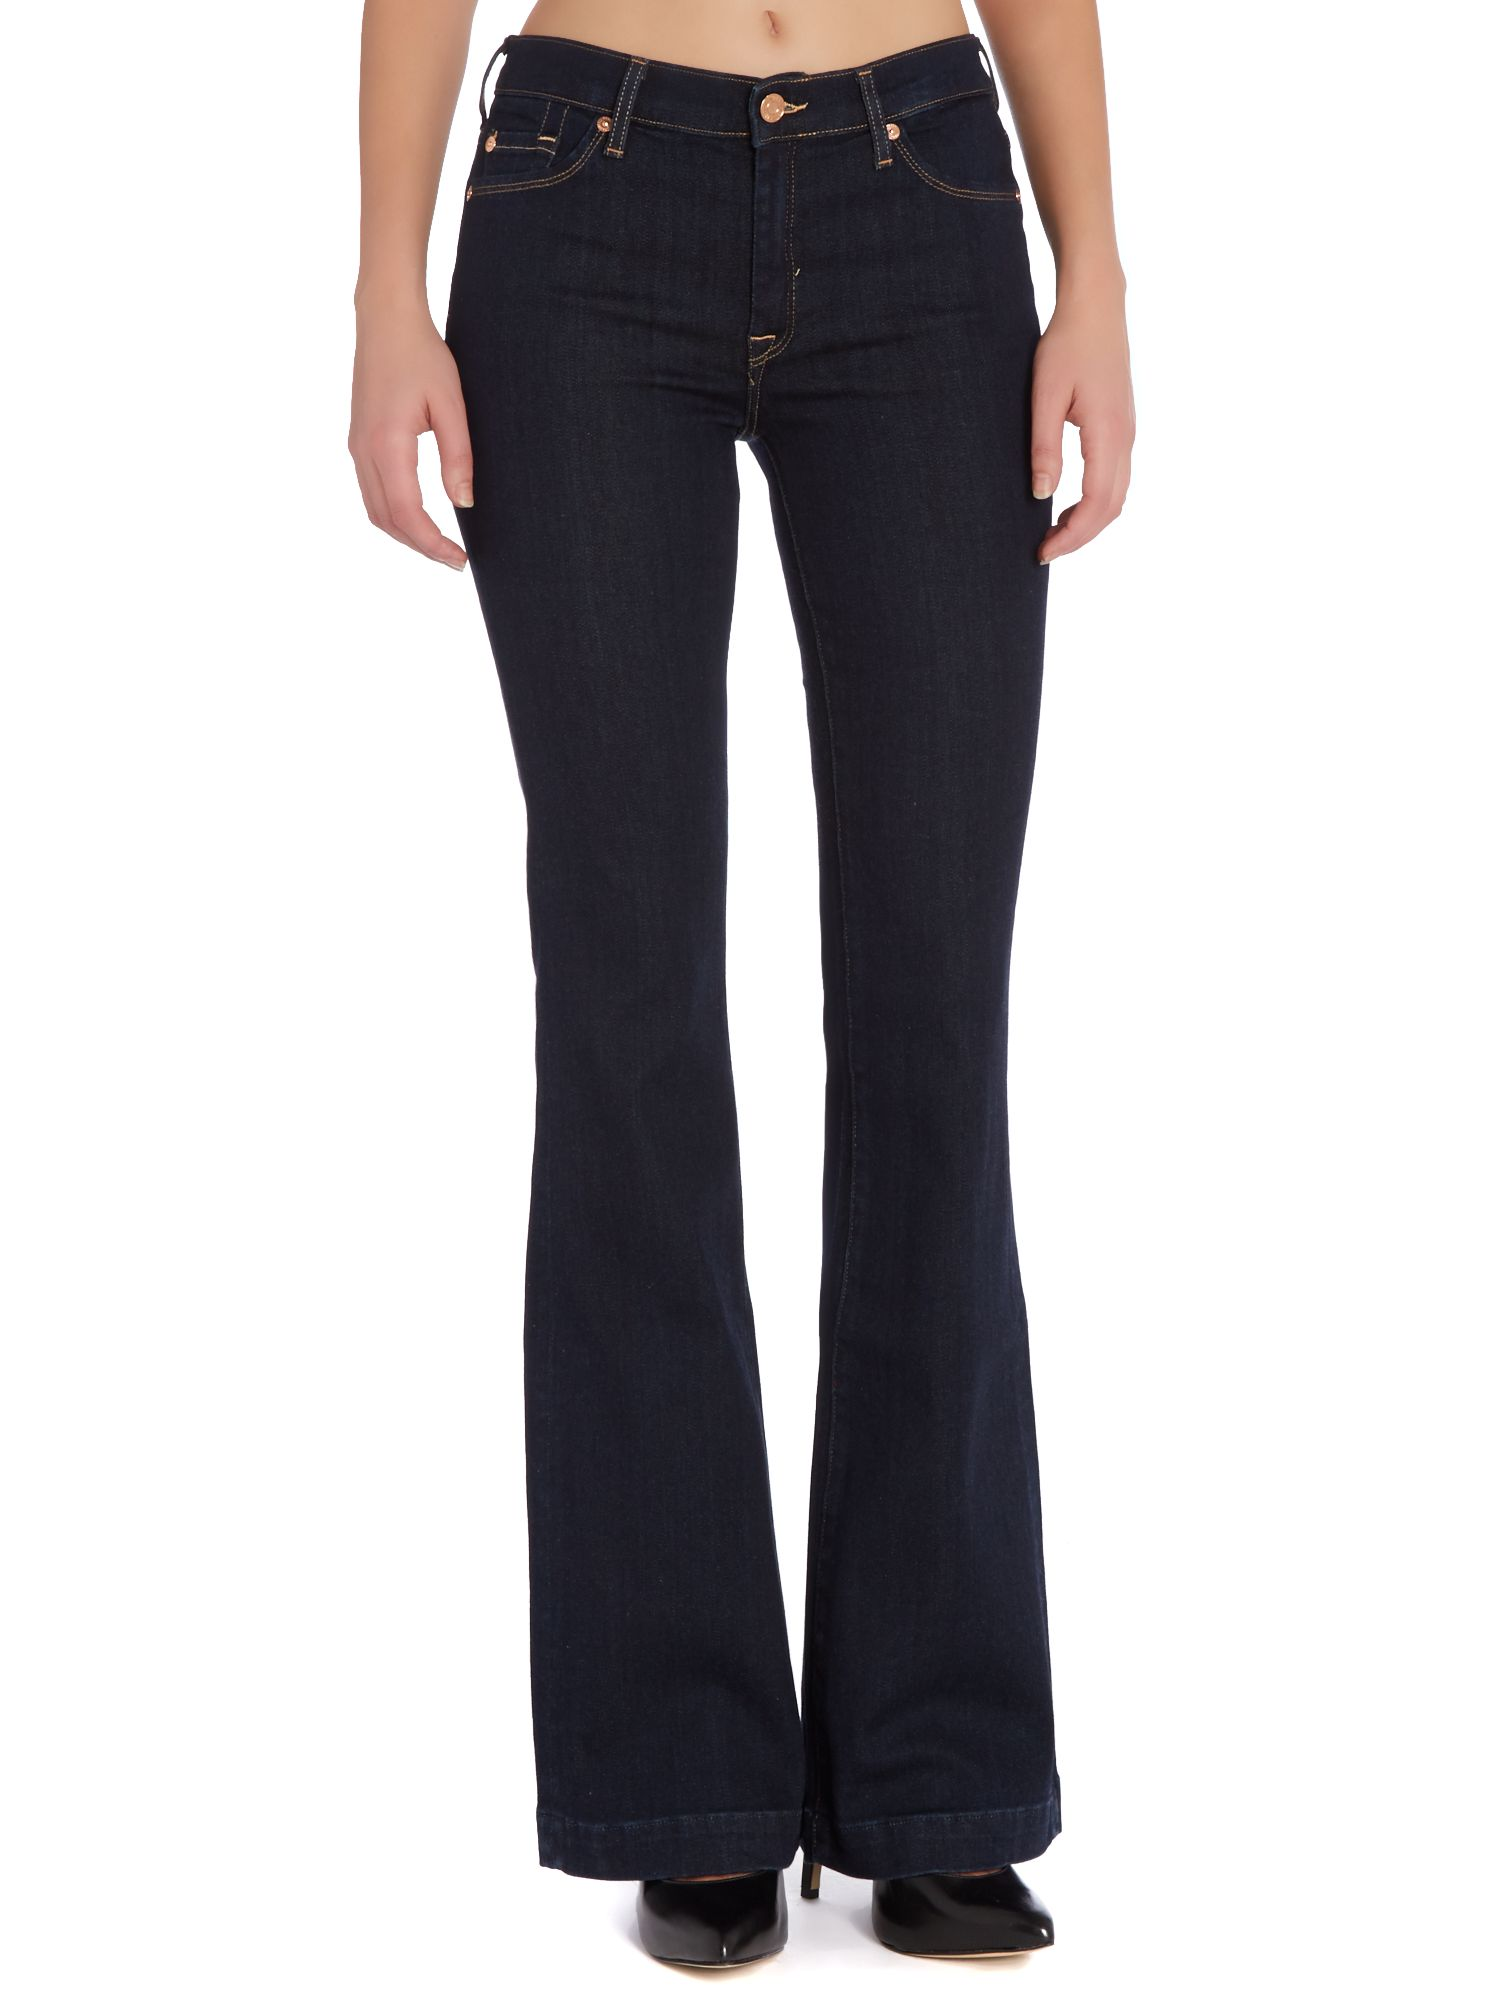 Charlize bootcut jeans in star shadow